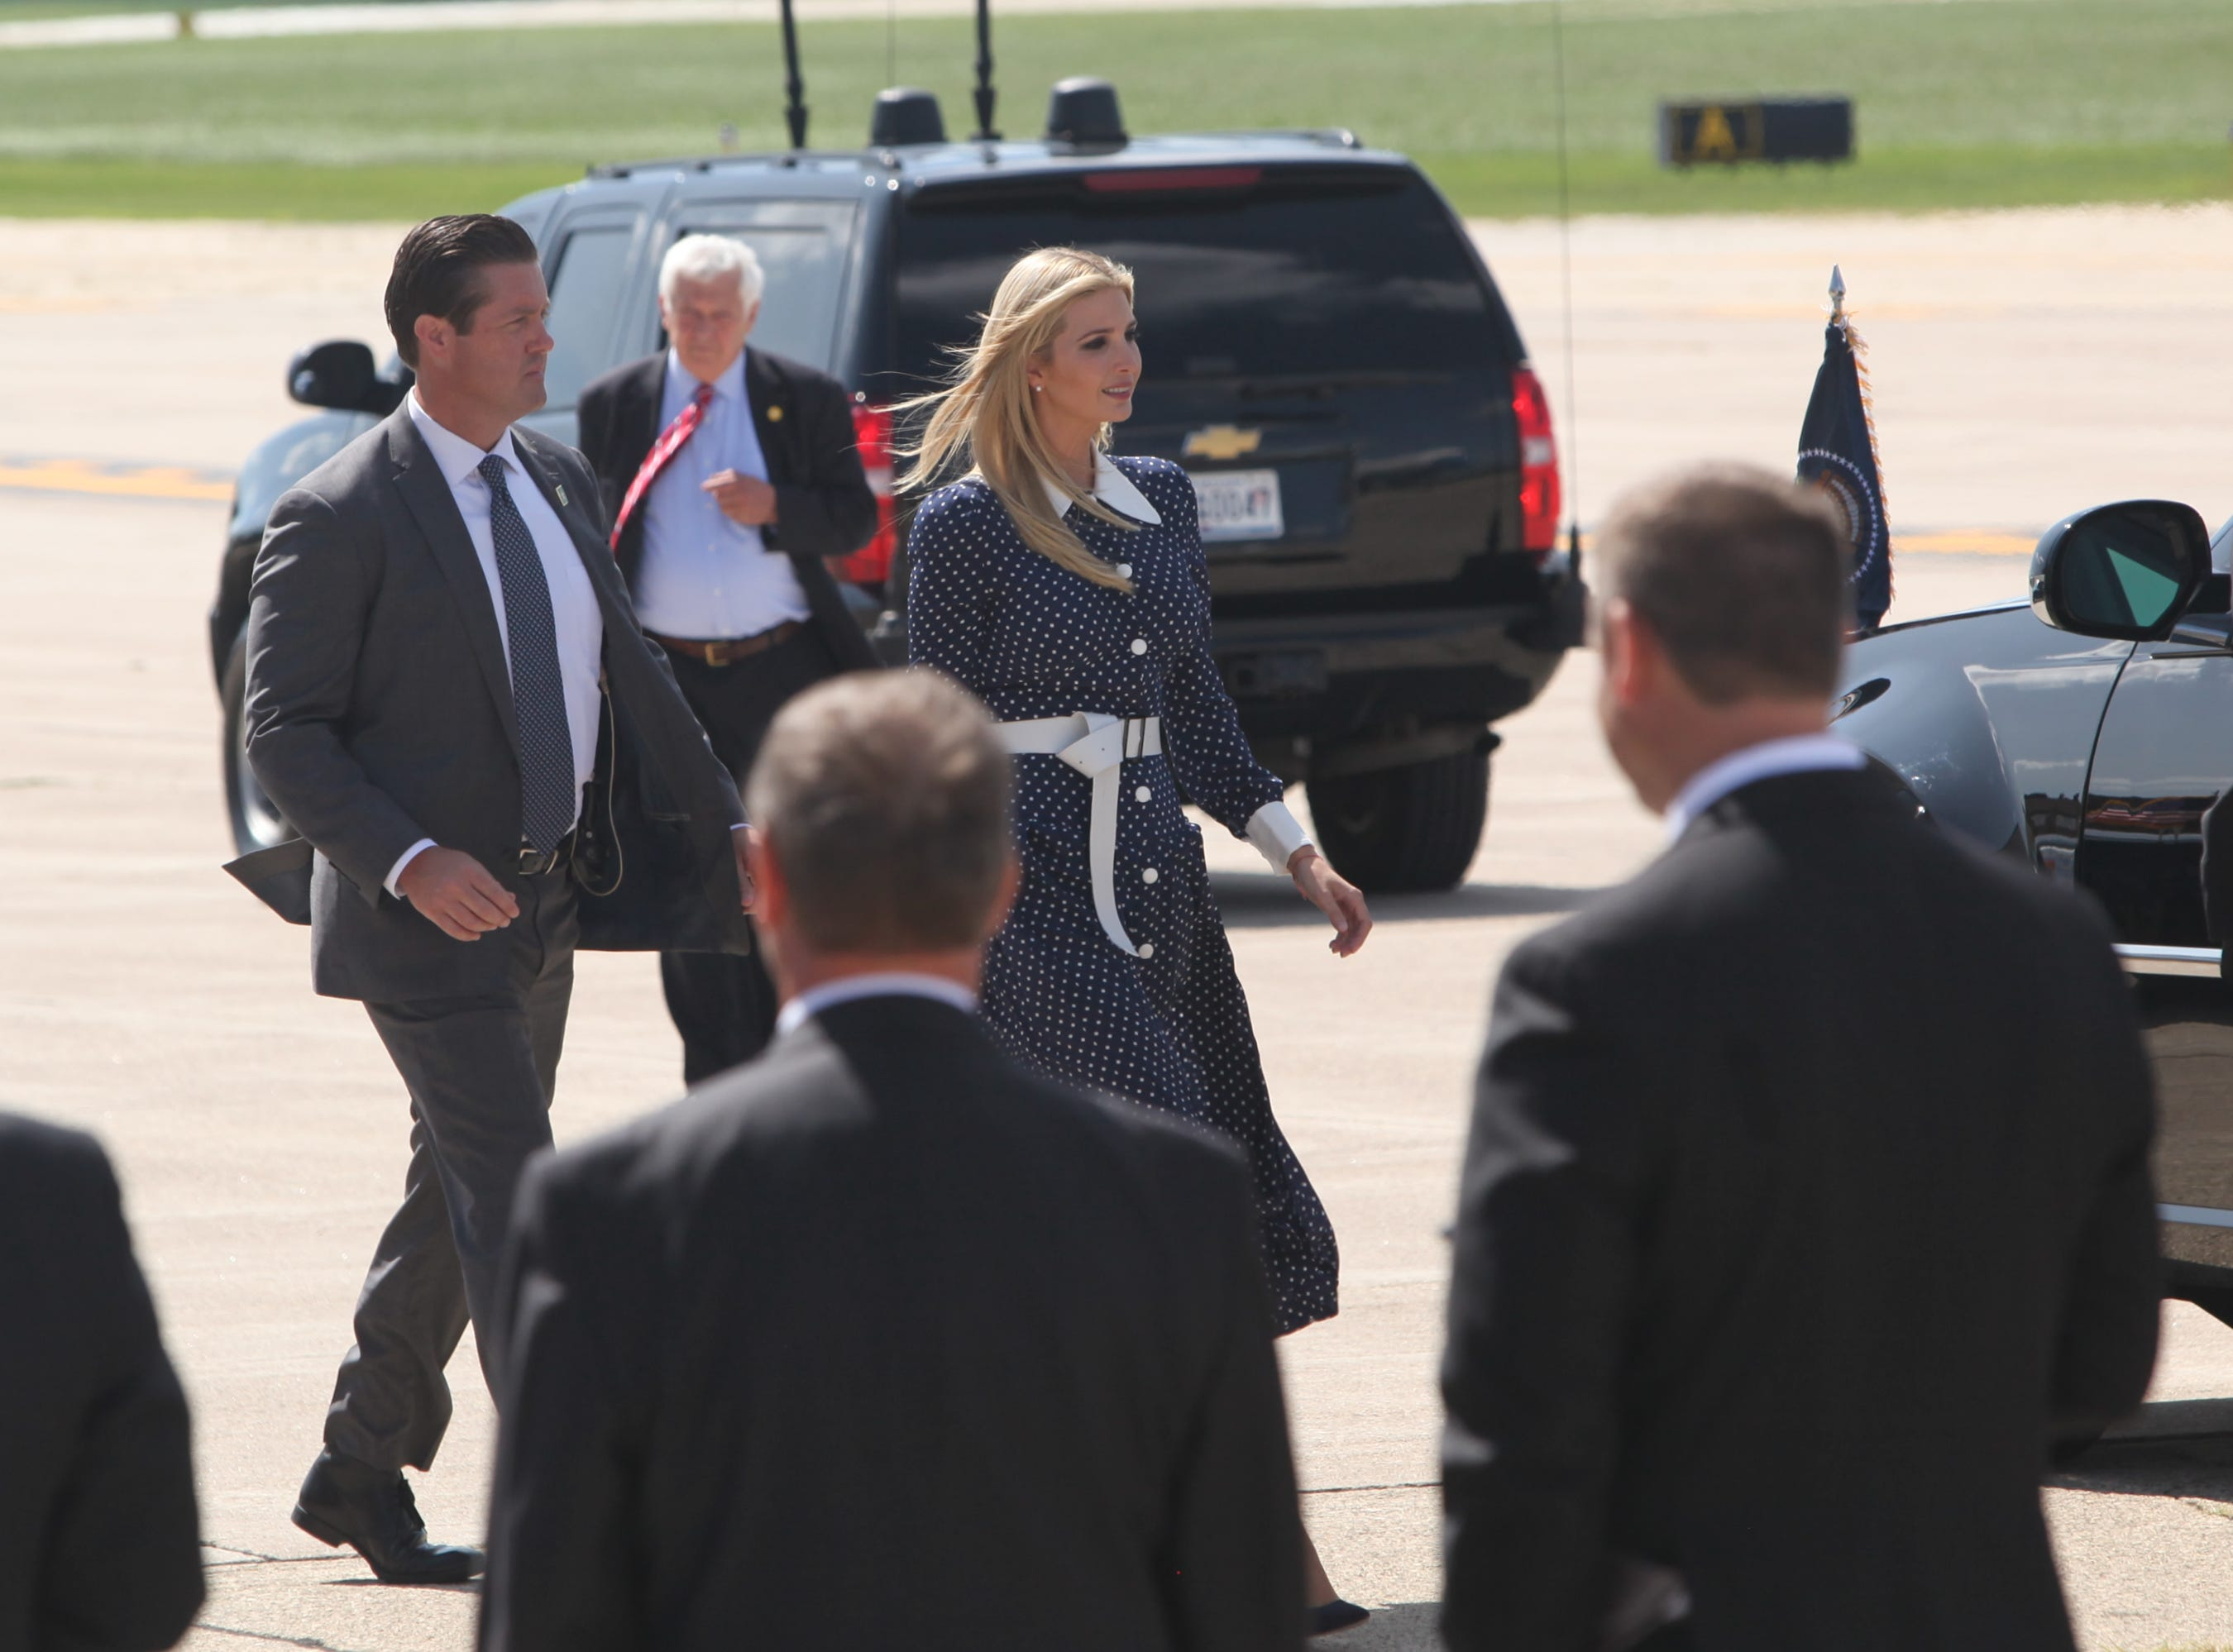 Ivanka Trump (center) arrives with President Donald Trump at Dubuque Regional Airport in Dubuque, Iowa, on Thursday morning, July 26, 2018. Trump will be visiting Northeast Iowa Community College to participate in a roundtable discussion about workforce development.